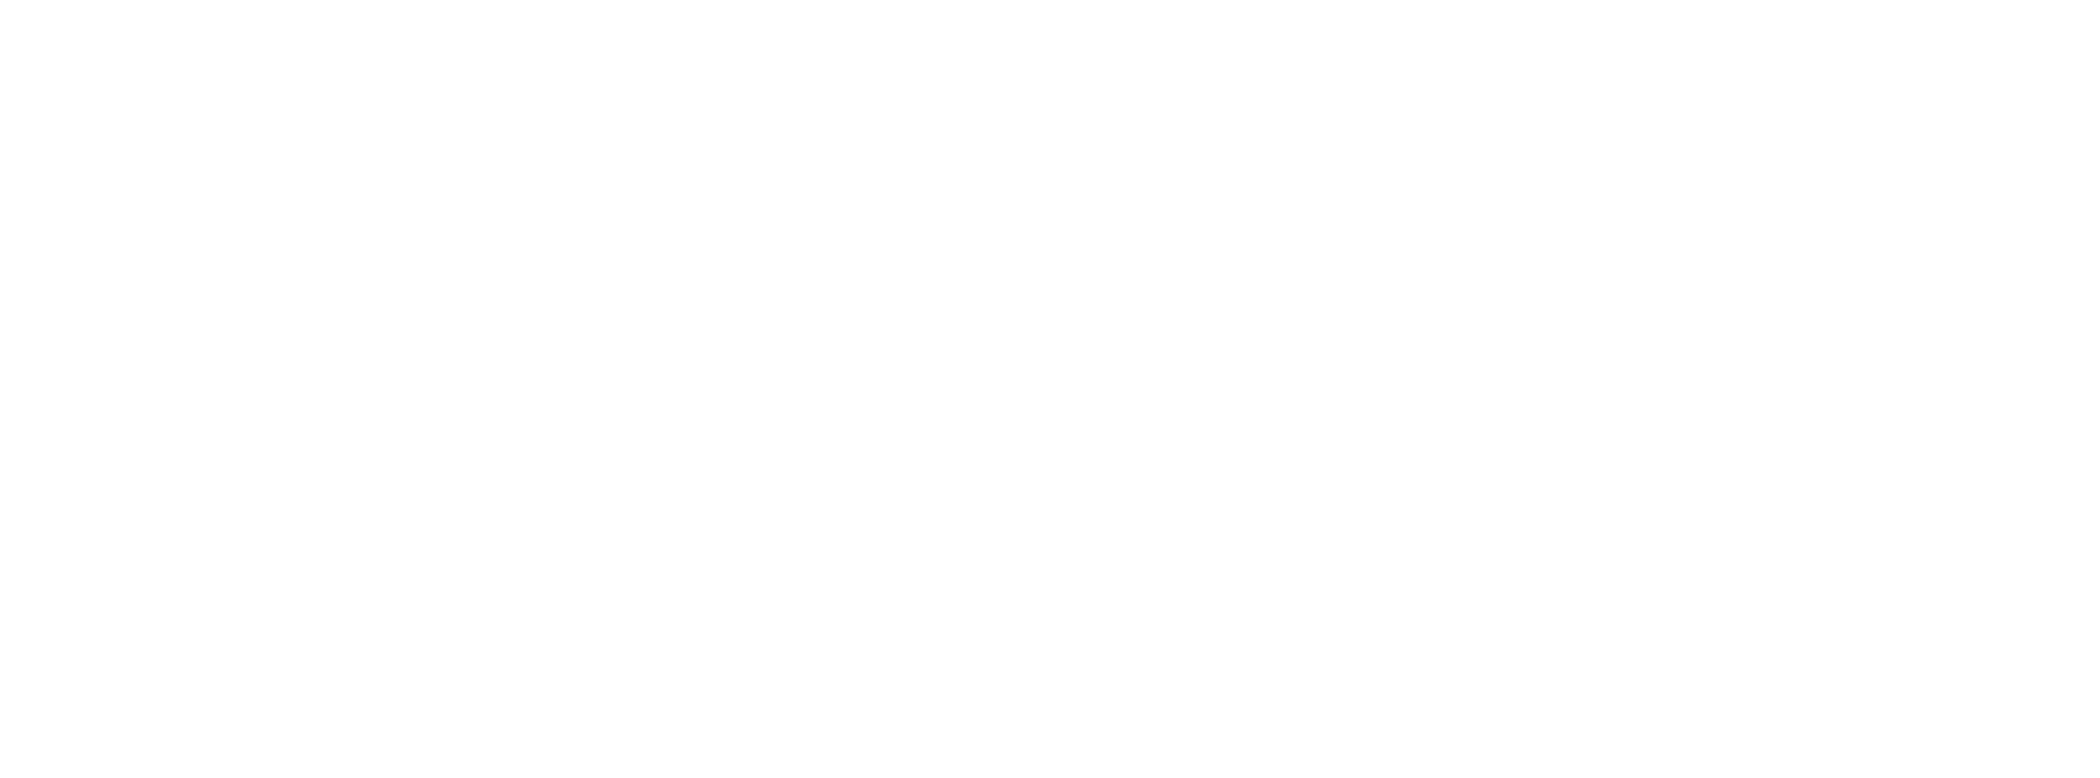 HeroImageTagline_INNOVATION.png